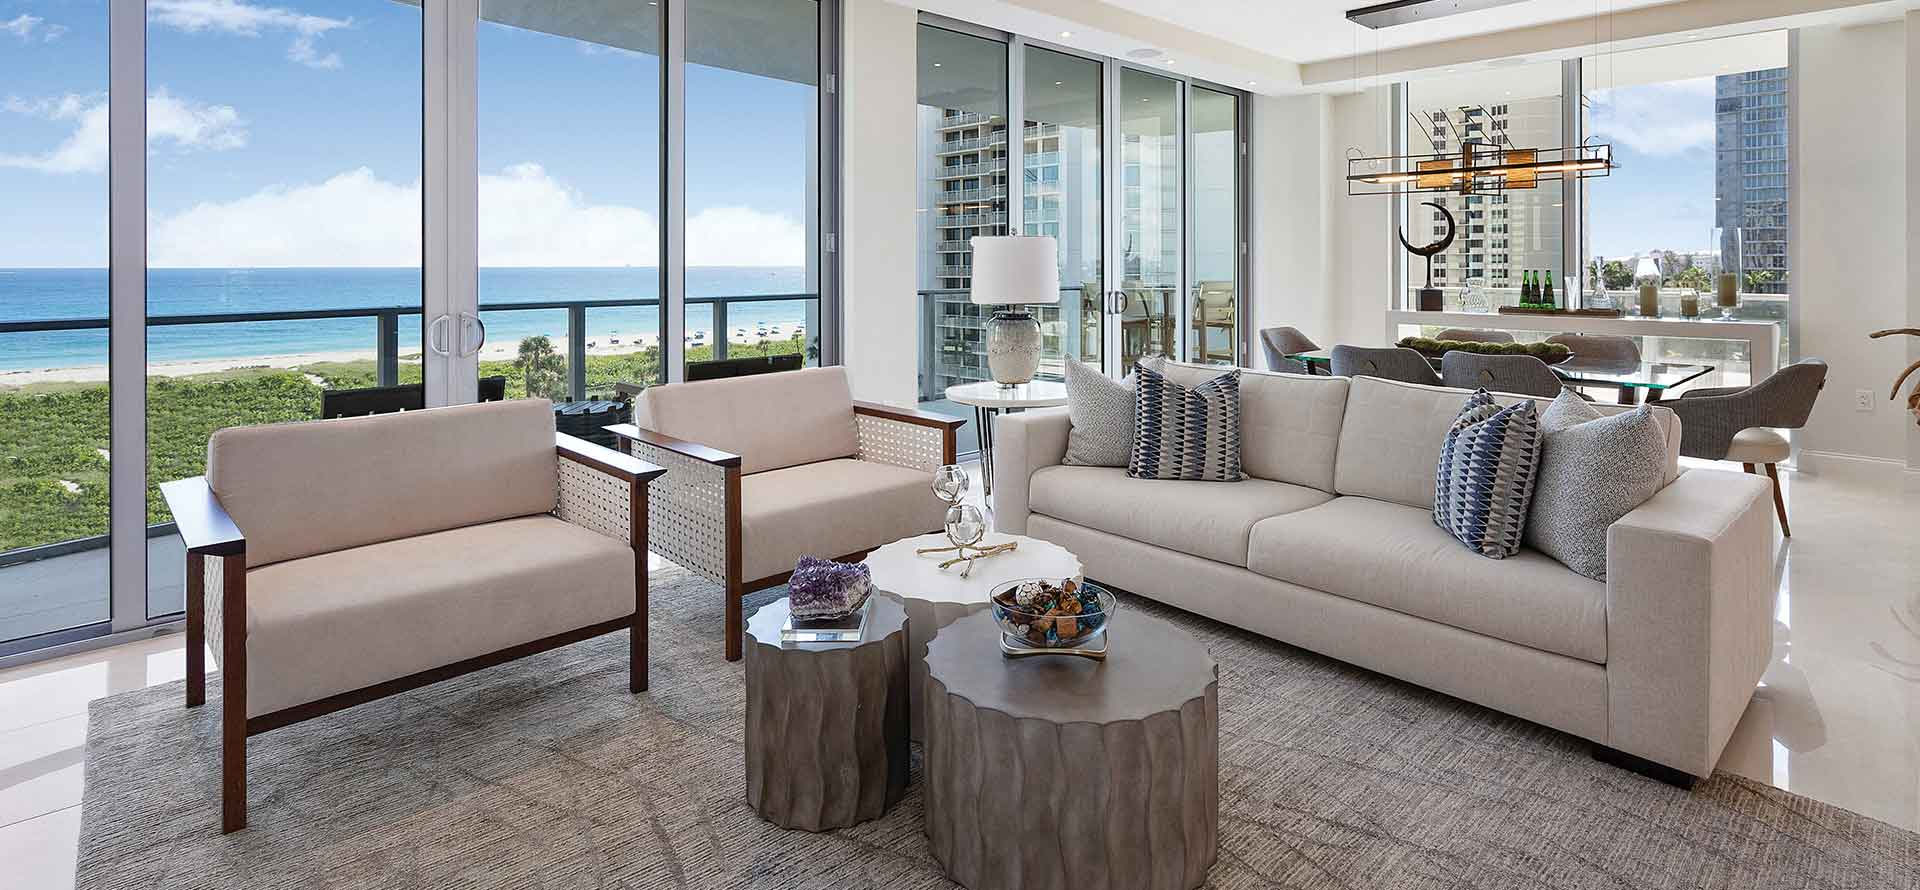 Open concept living space with luxury finishes and expansive hurricane windows